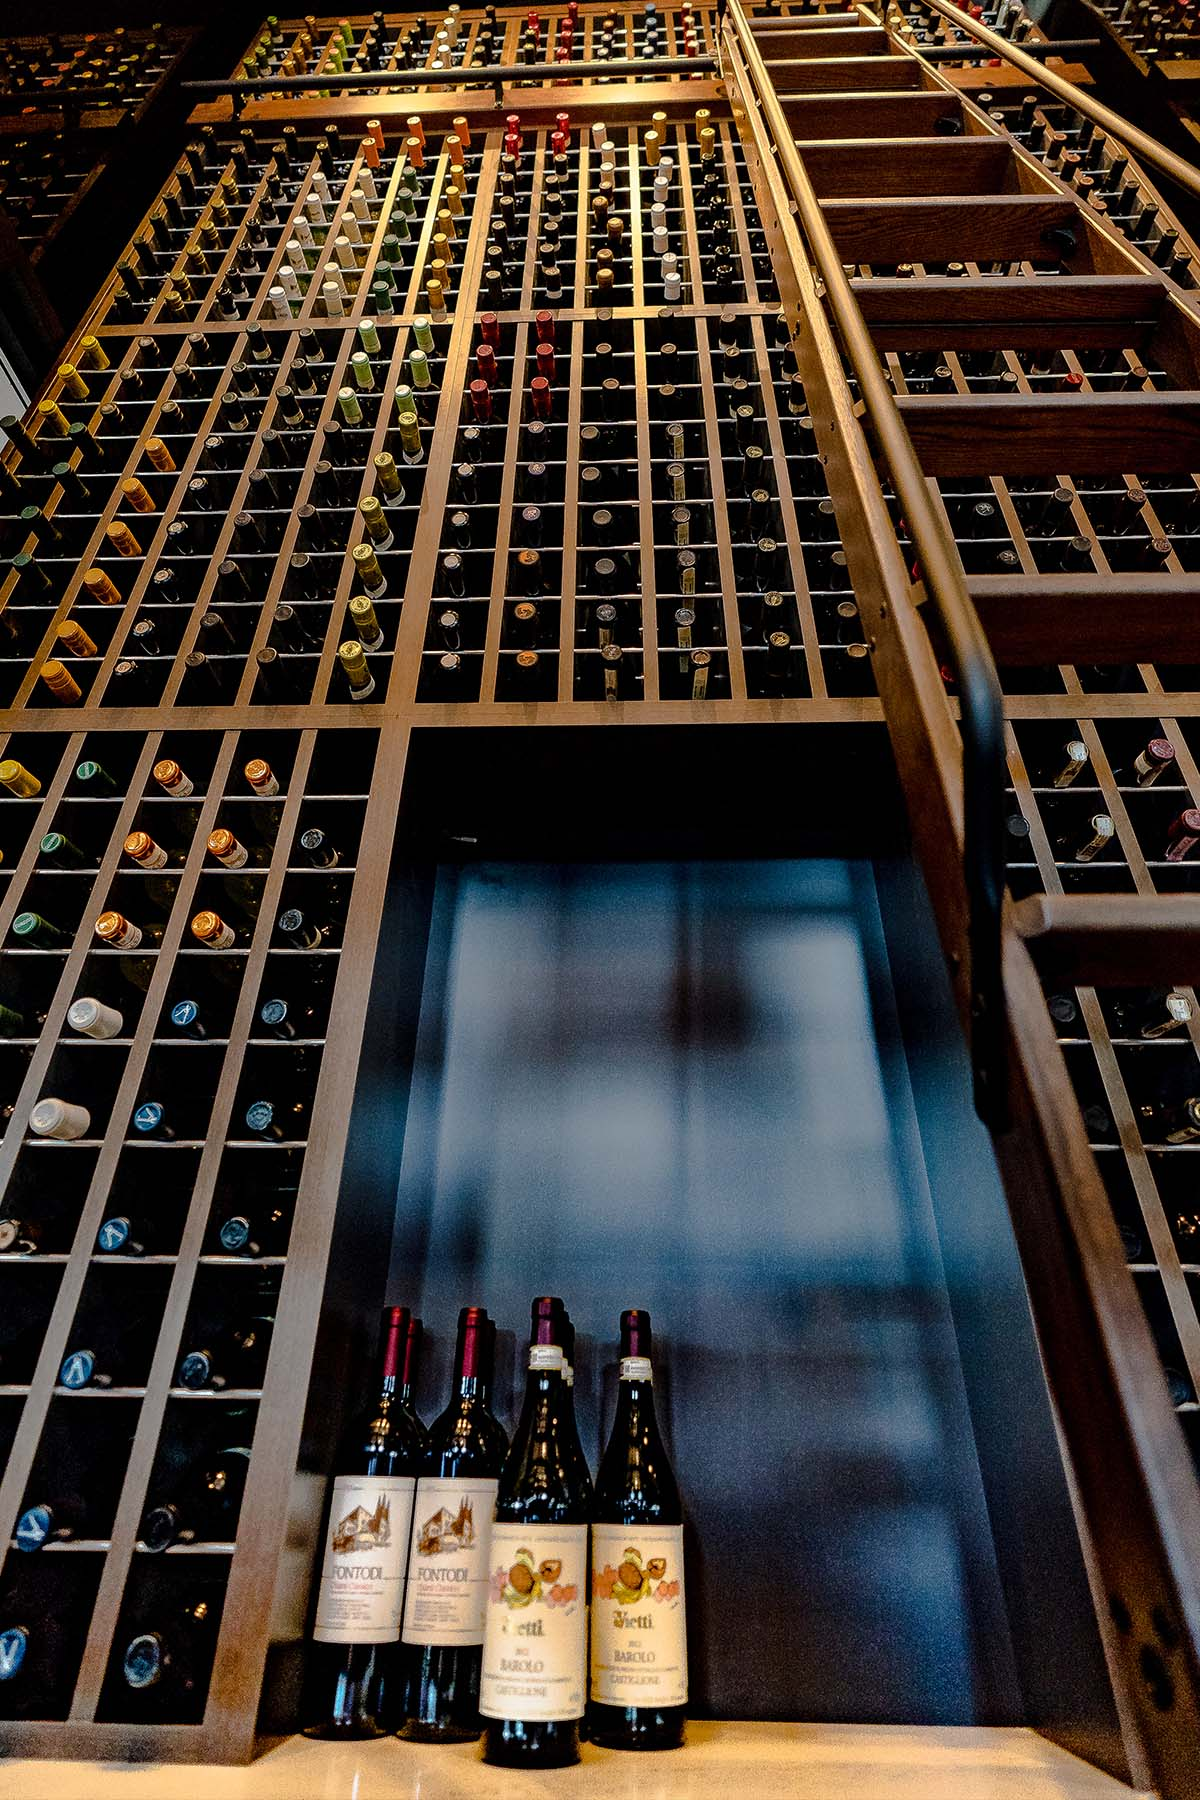 Allora's 22 foot wine cellar